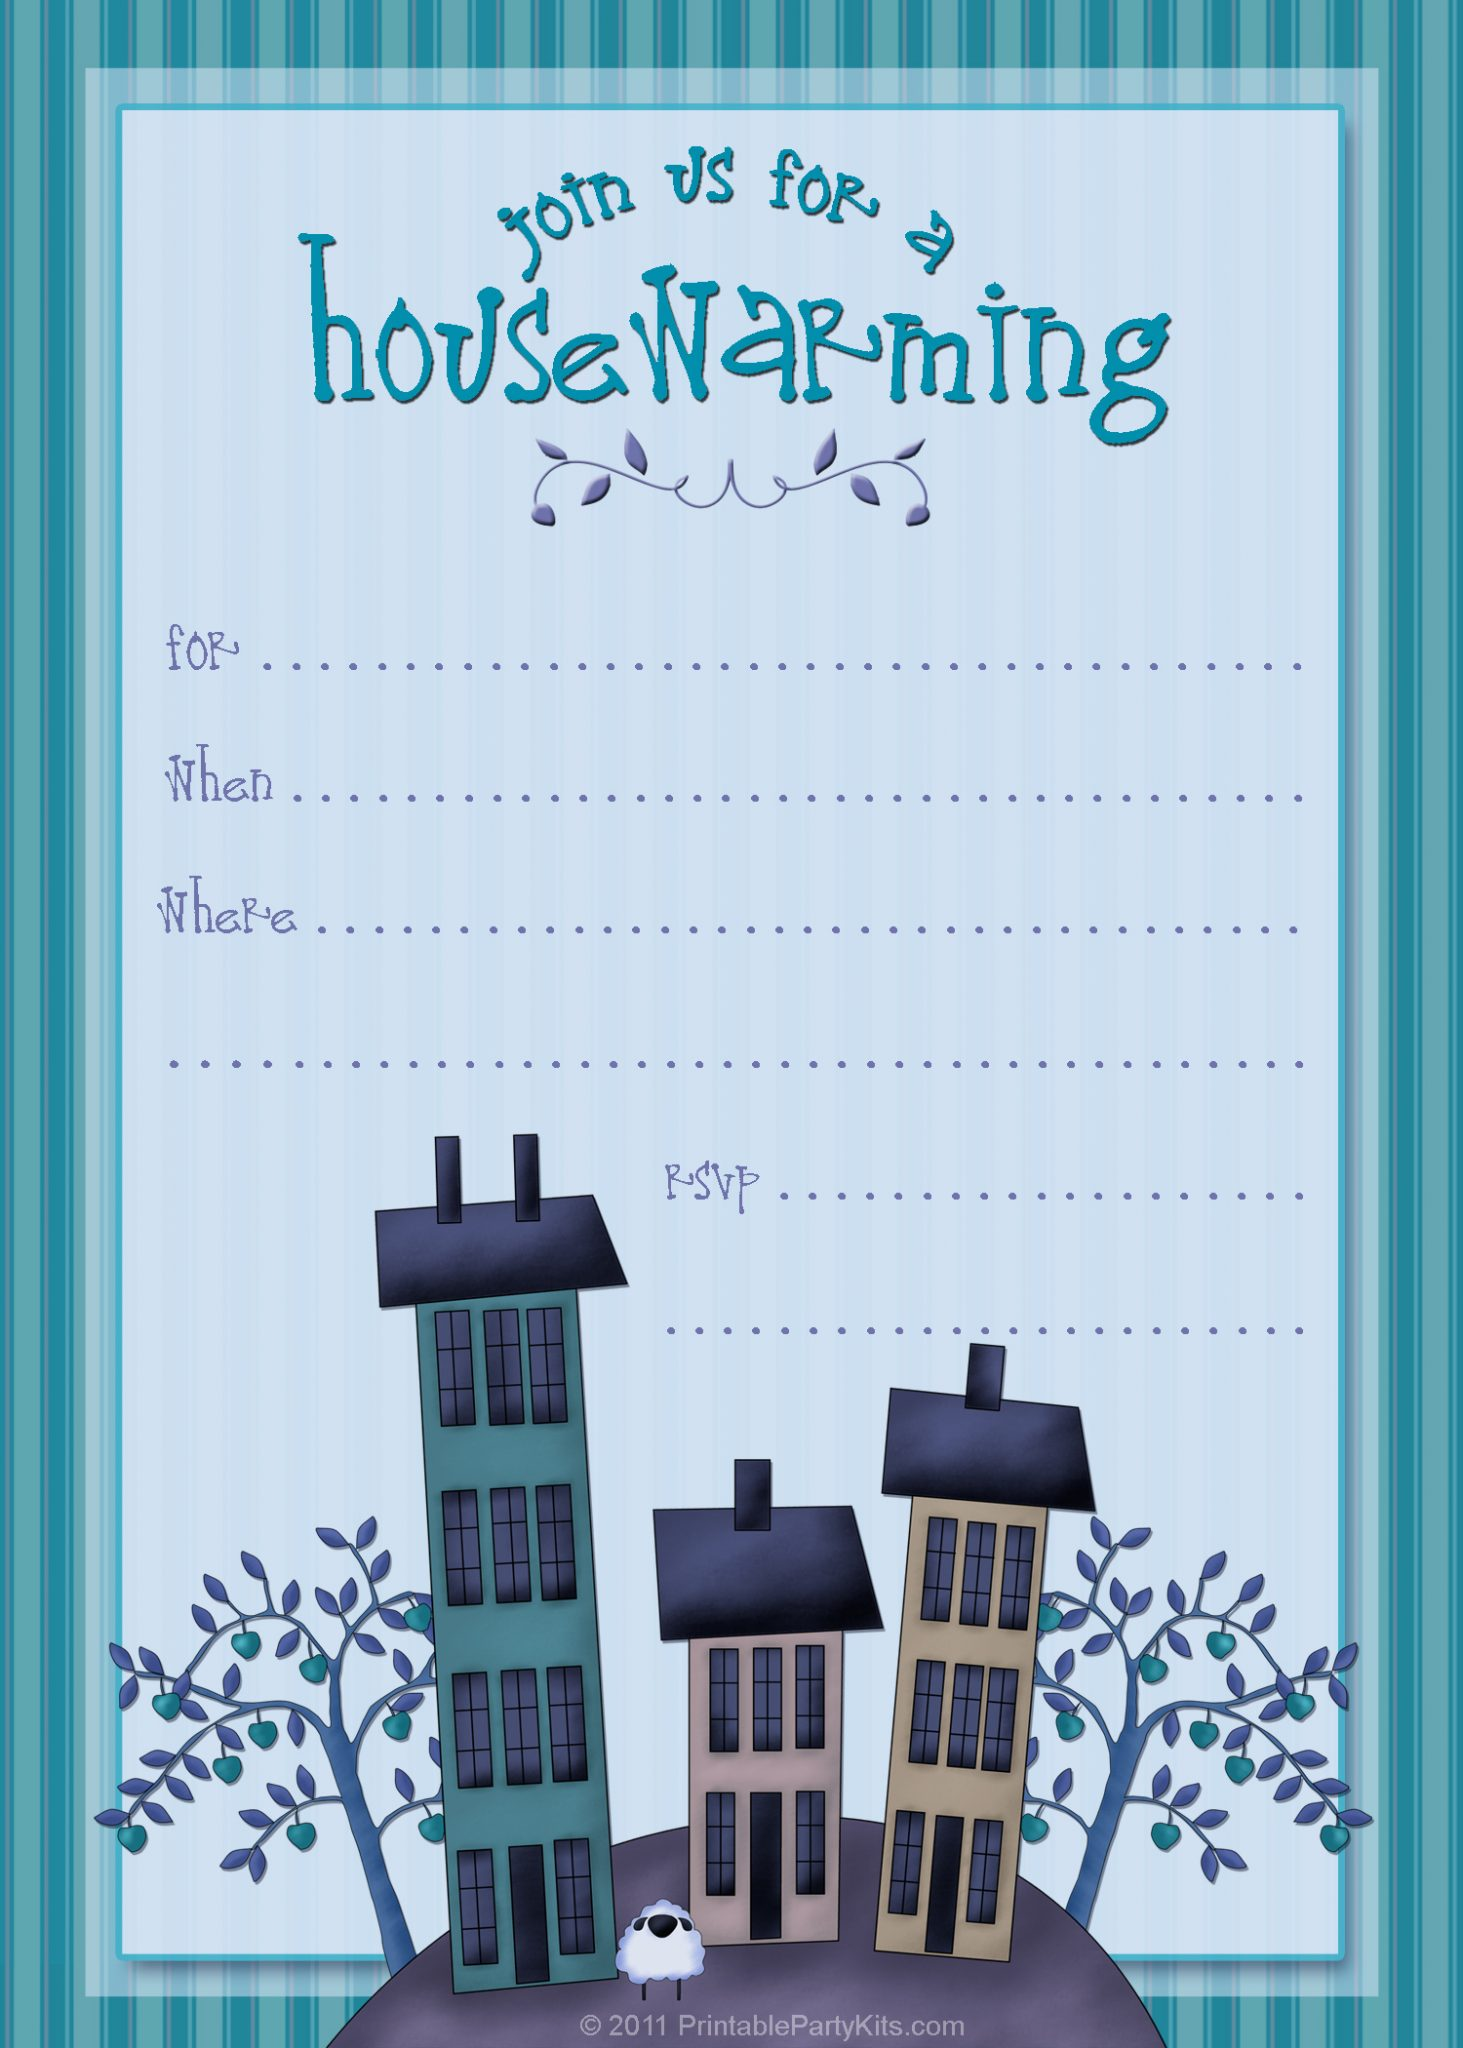 Stupendous image within printable housewarming invitation